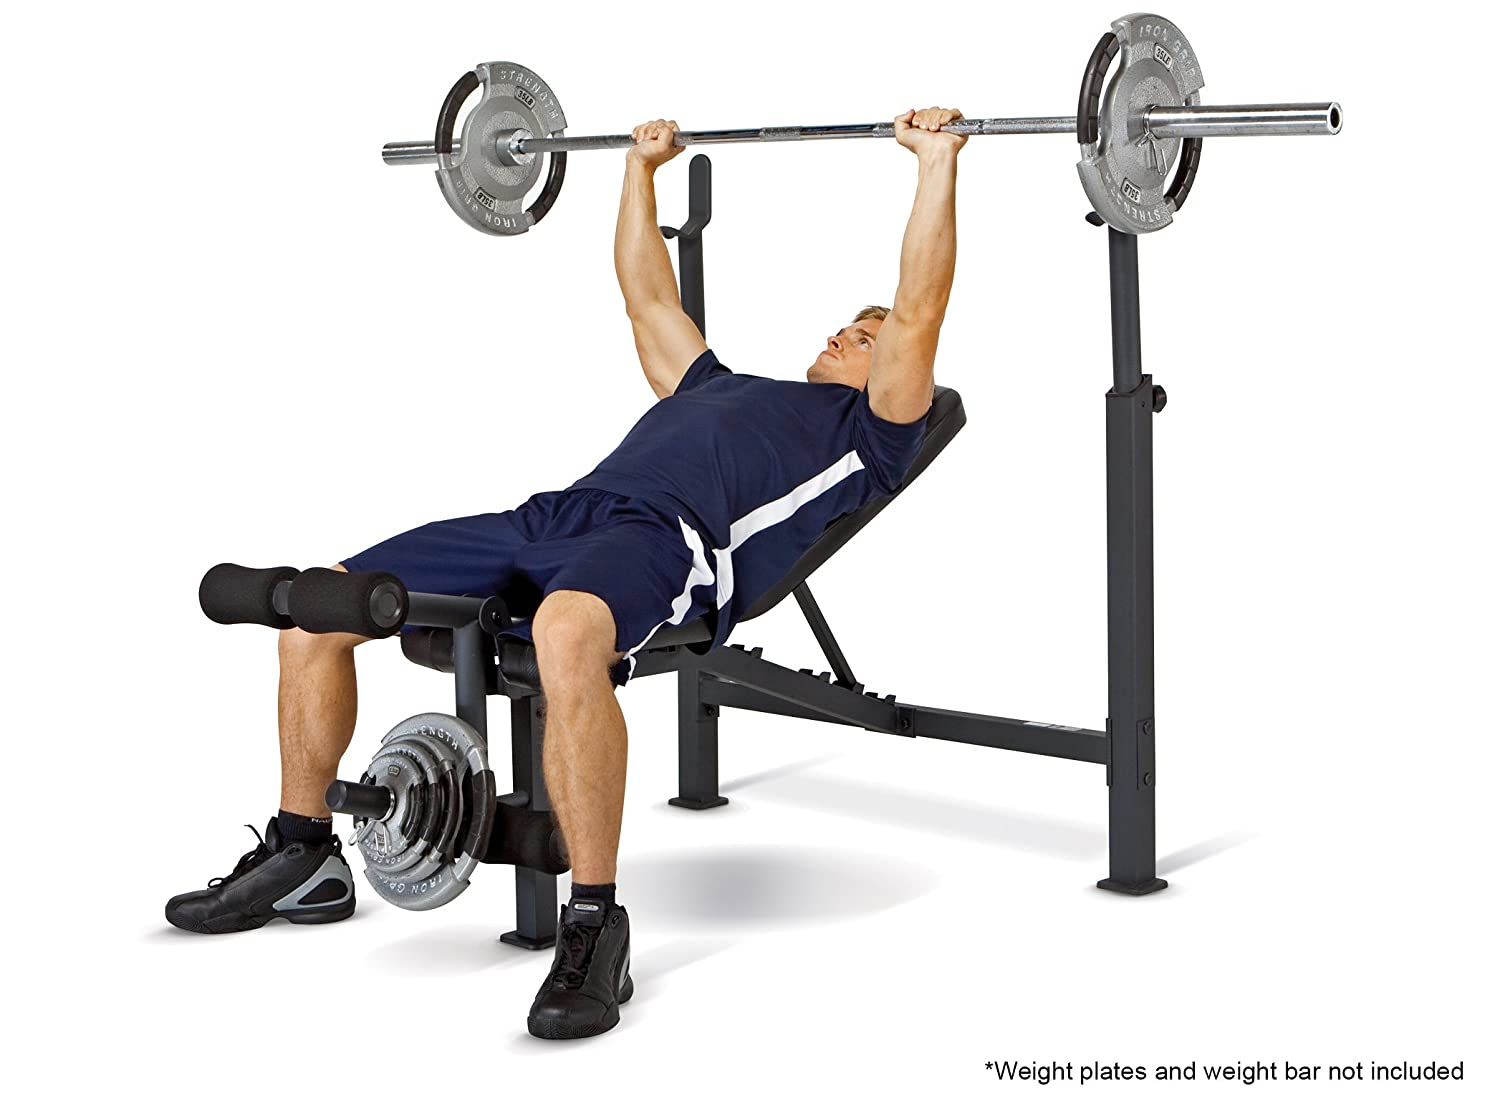 bench leg preacher curl product body hayneedle cfm weight master benches developer champ olympic handle crunch and with